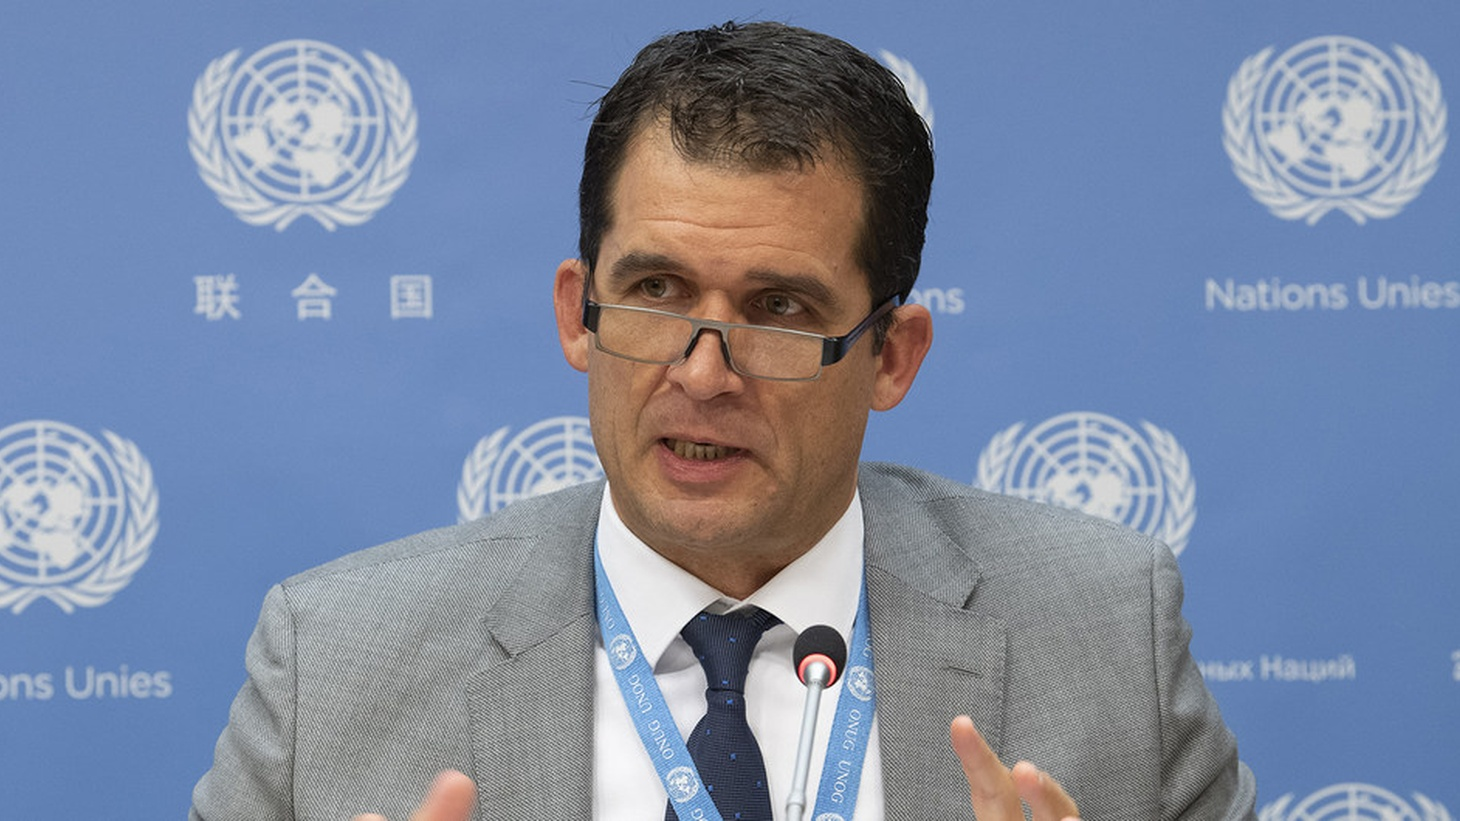 "Nils Melzer, Special Rapporteur on torture and other cruel, inhuman or degrading treatment or punishment during panel "" The death penalty and the prohibition of torture and other cruel, inhuman or degrading treatment or punishment at a 34th Session of the Human Rights Council. 1 March 2017."